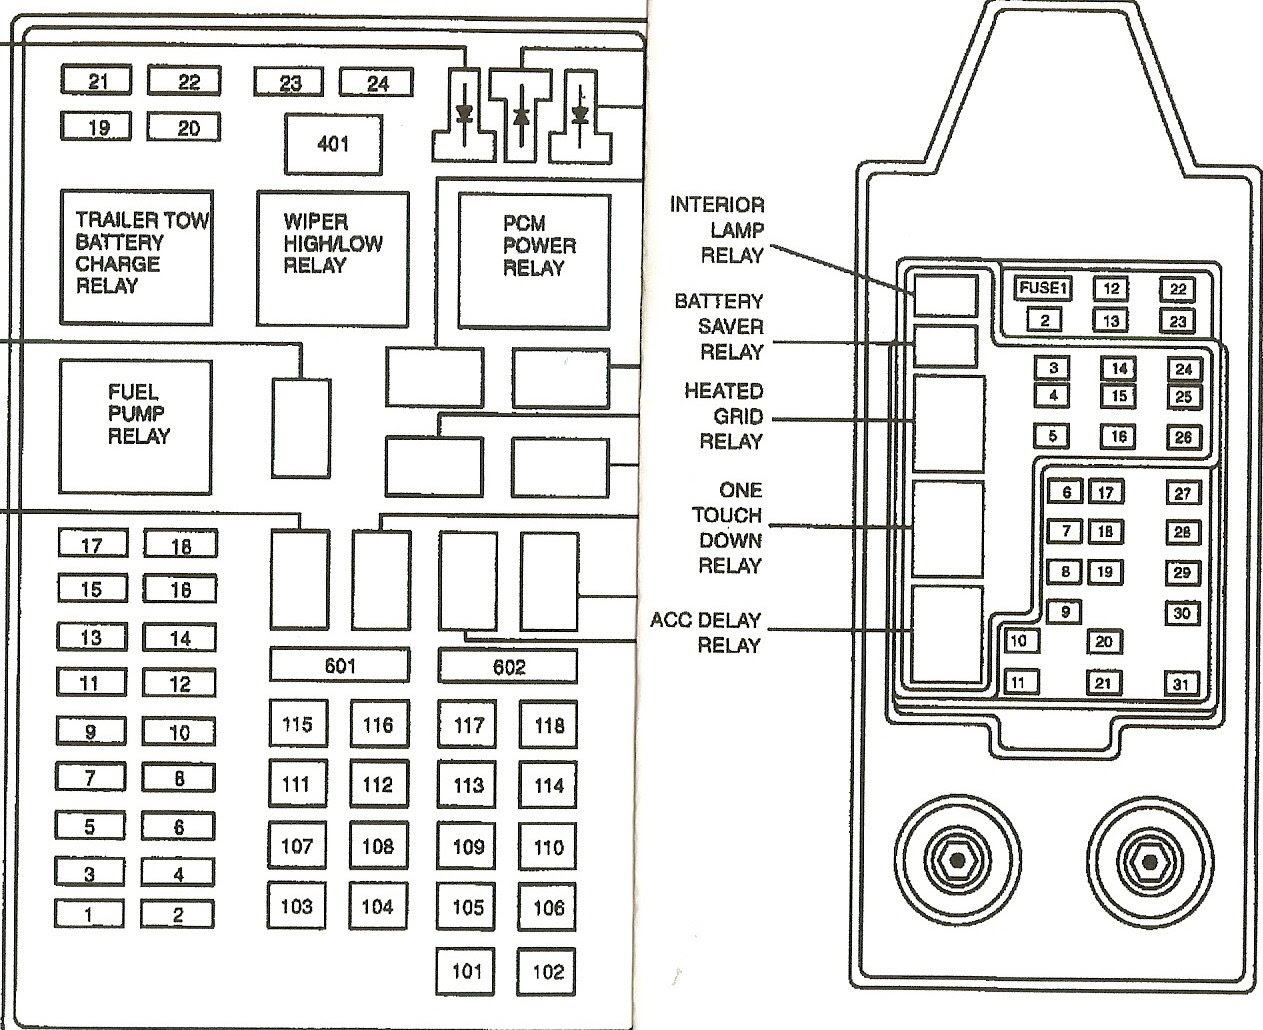 Fuse Box Diagram For 2002 Ford Excursion 2001 Jeep Grand Cherokee Electric Fan Relay Wiring Diagram Wiring Diagram Schematics